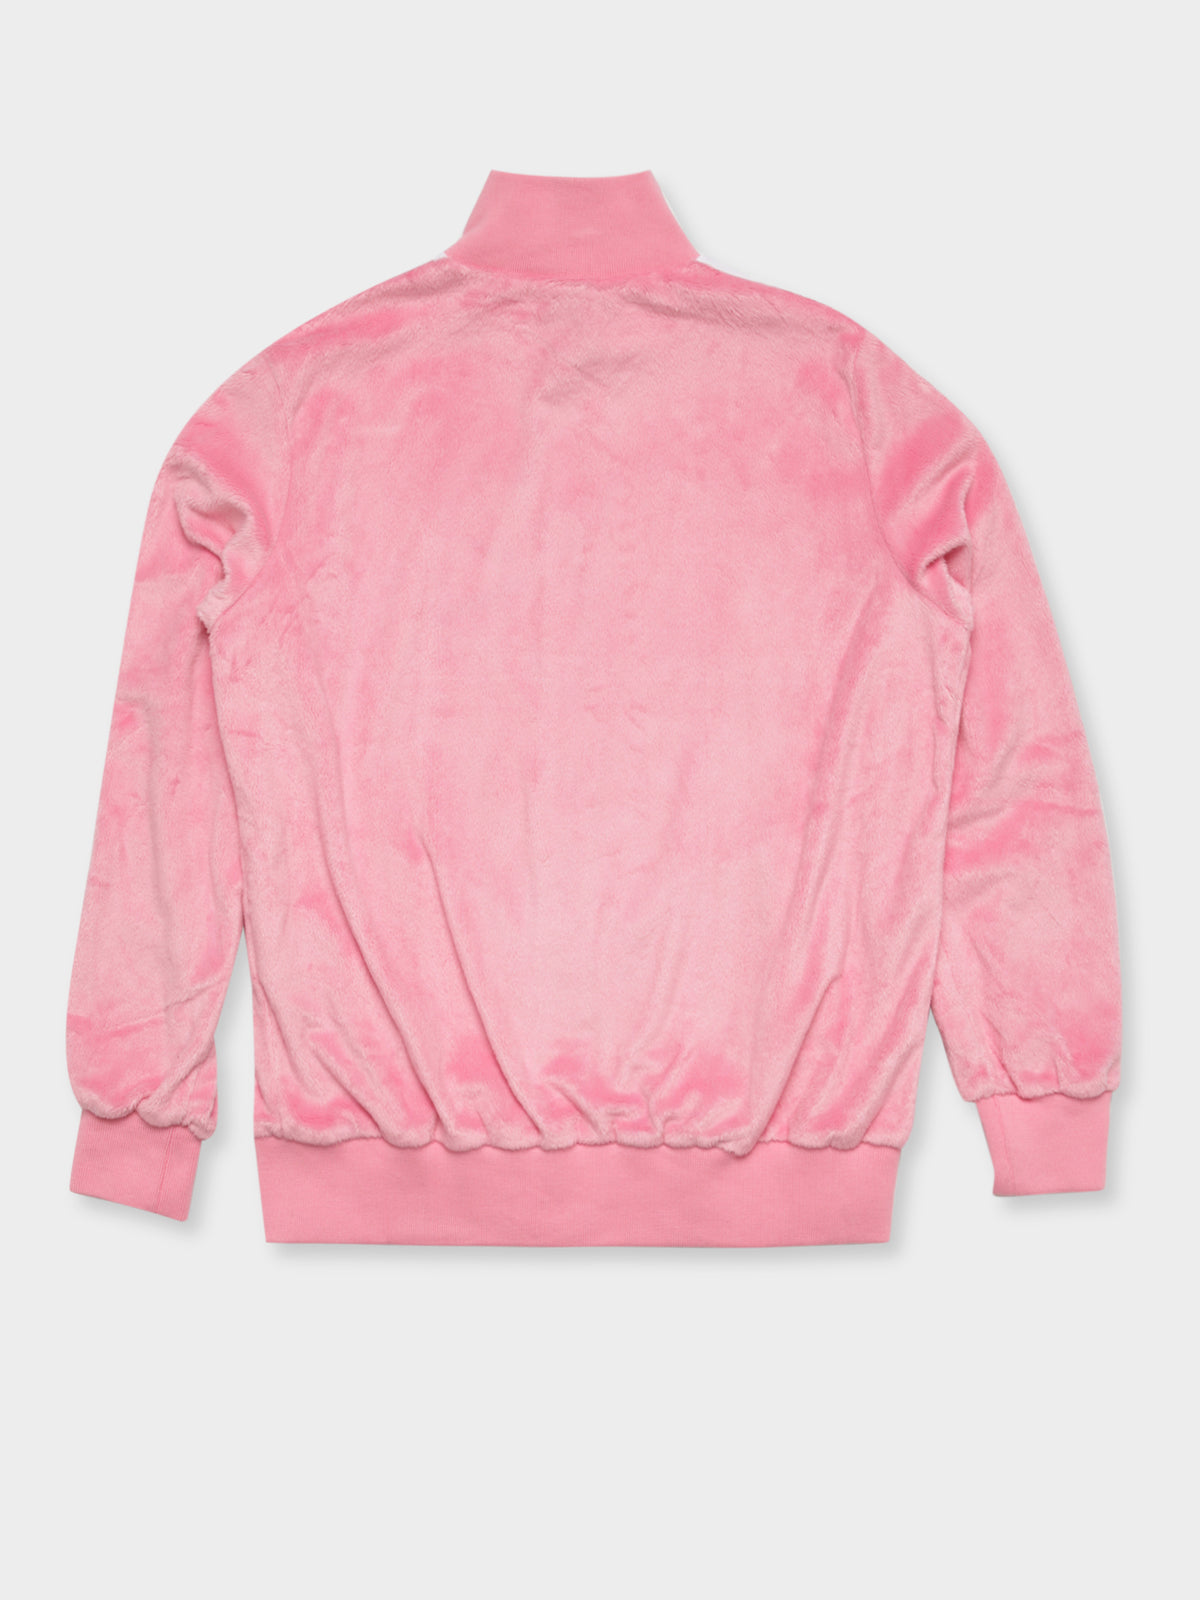 Pippini Jacket in Pink